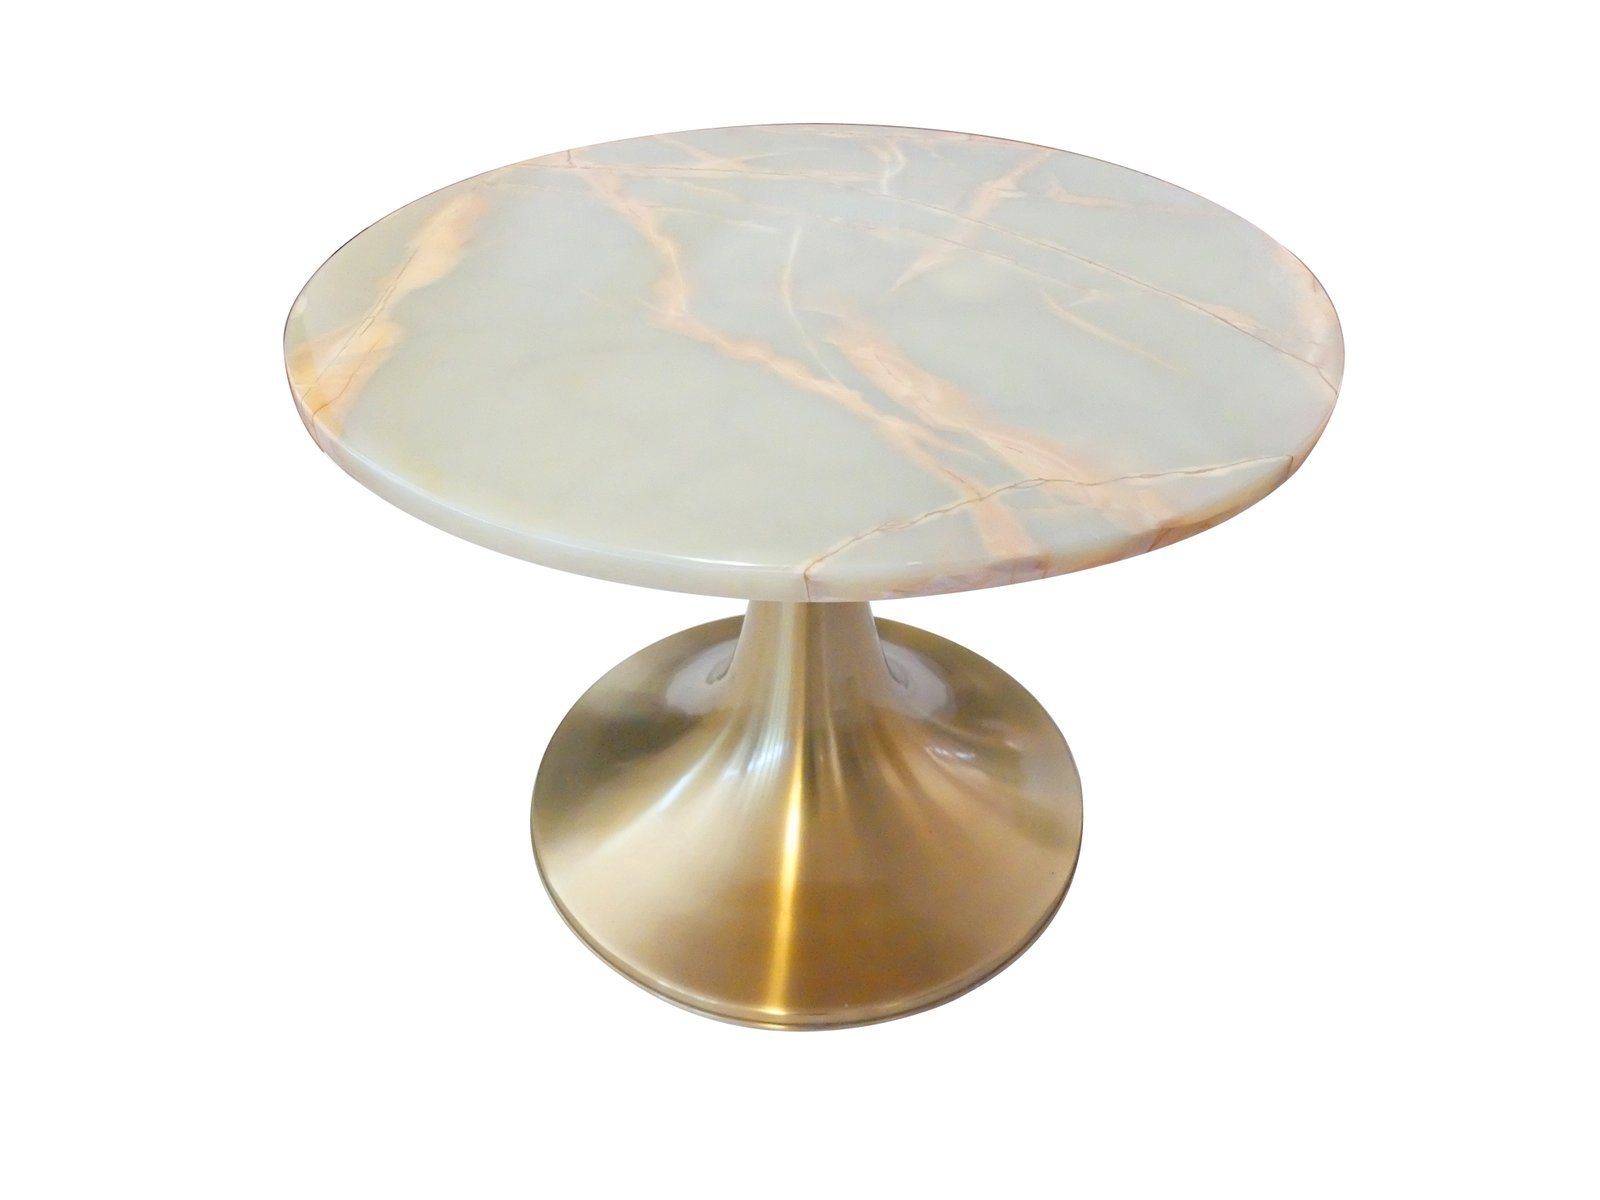 Swivel Coffee Table by Angelo Mangiarotti for Bernini 1960s for